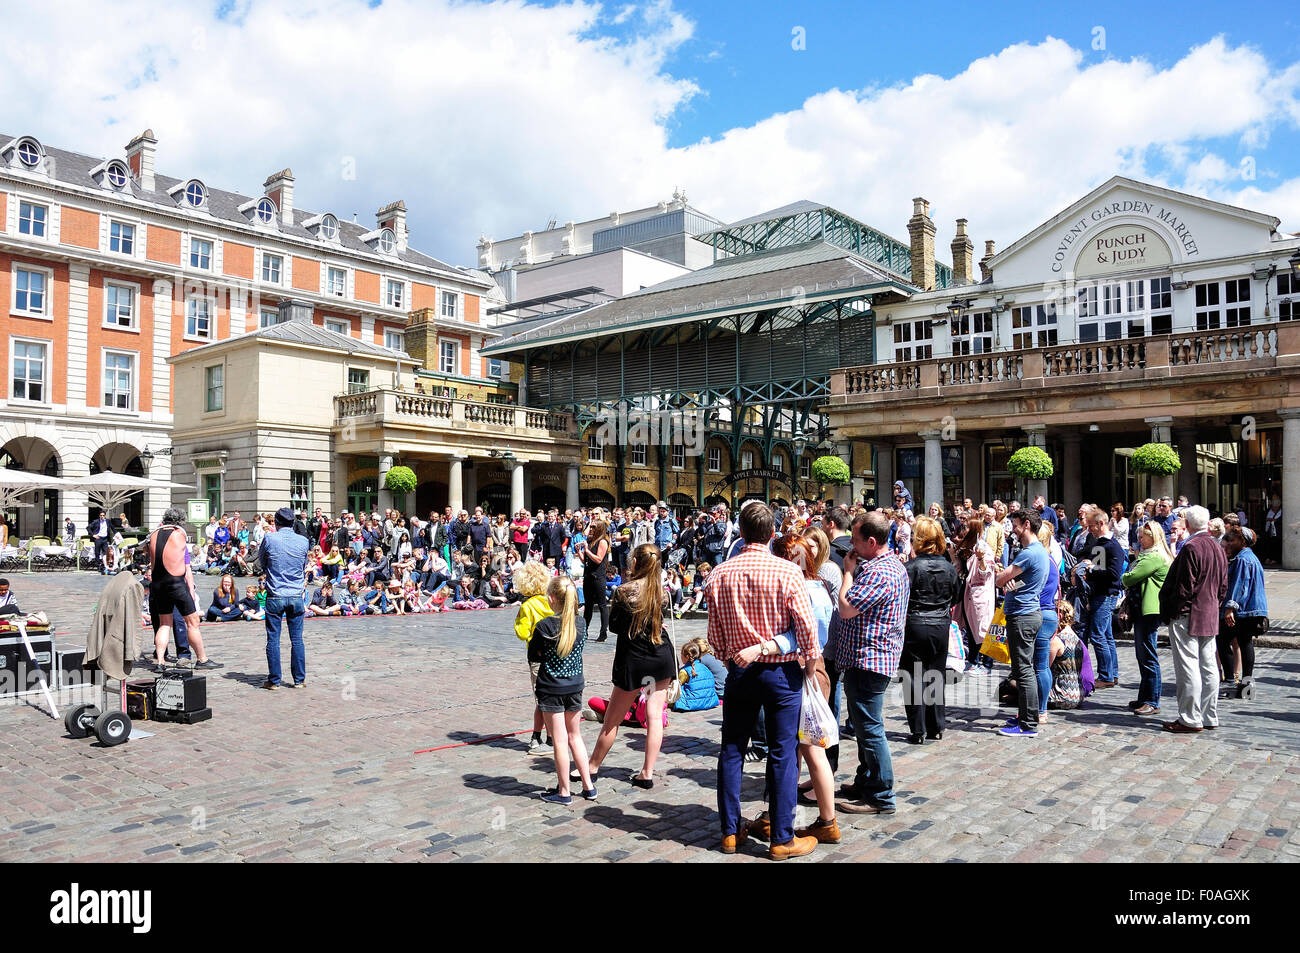 Crowd watching entertainers in Covent Garden Market, Covent Garden, City of Westminster, London, England, United - Stock Image